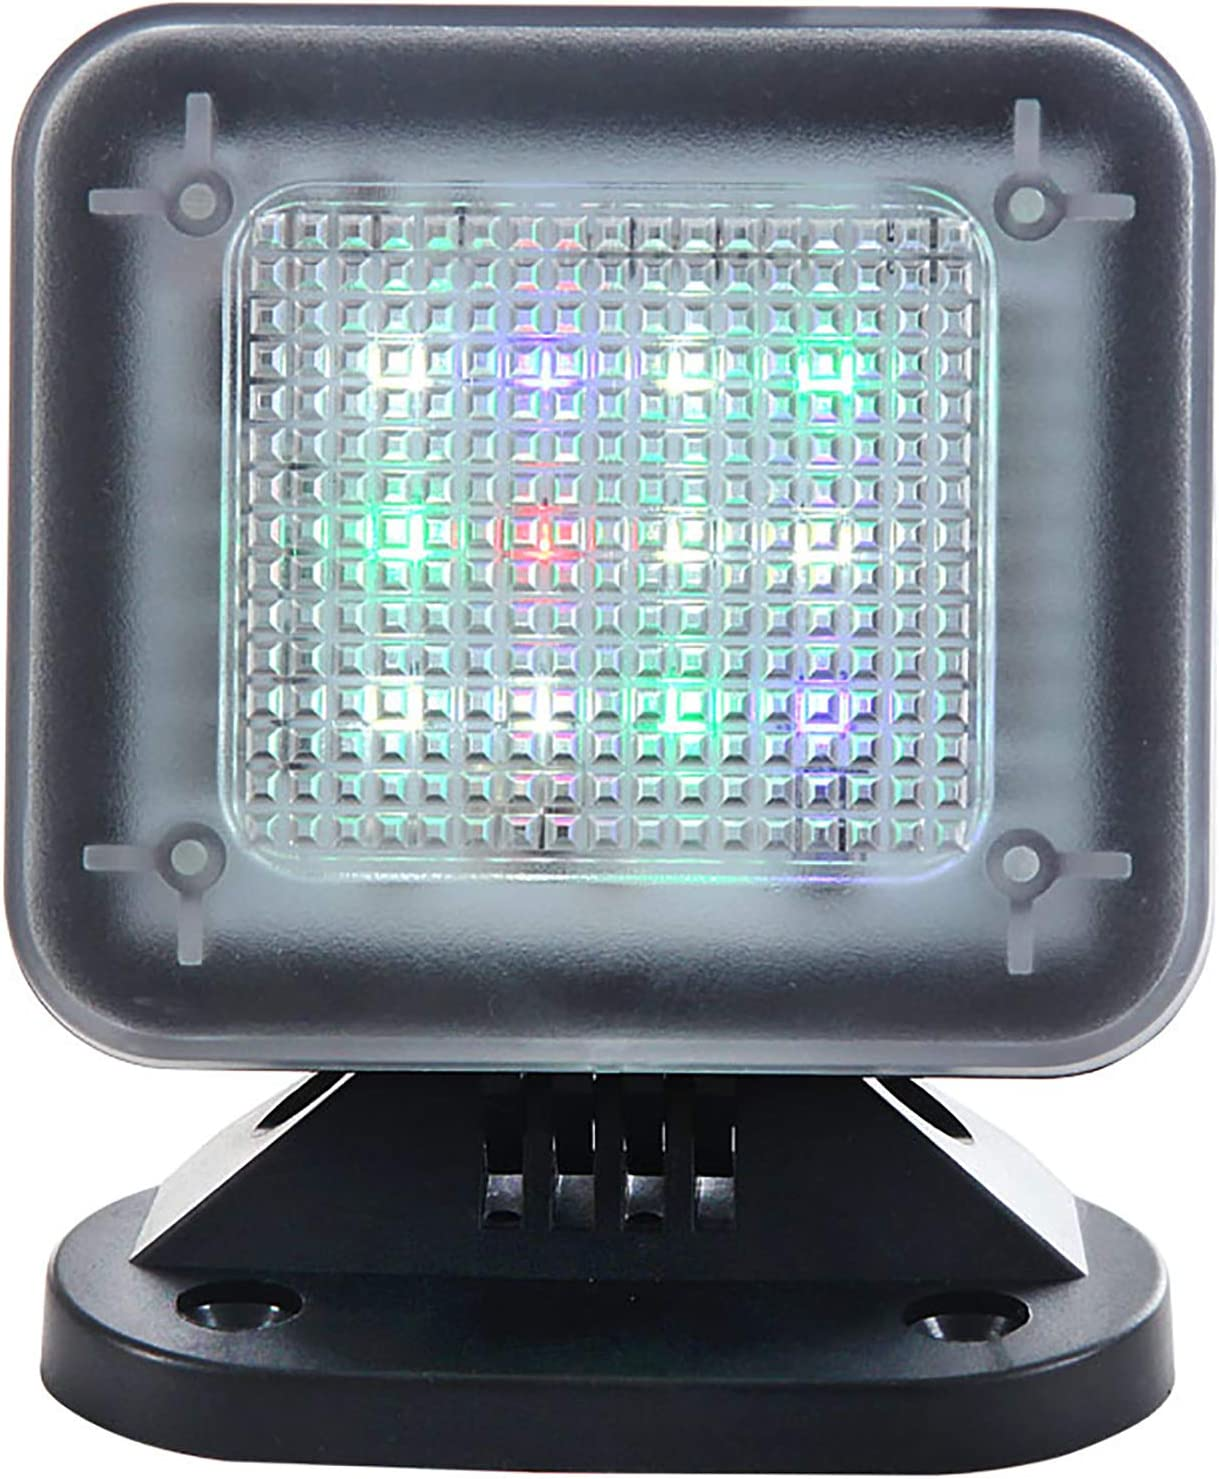 WALI Dummy Fake Security TV Light LED Simulator with Timer Sensor Crime Prevention (FTV001), Black